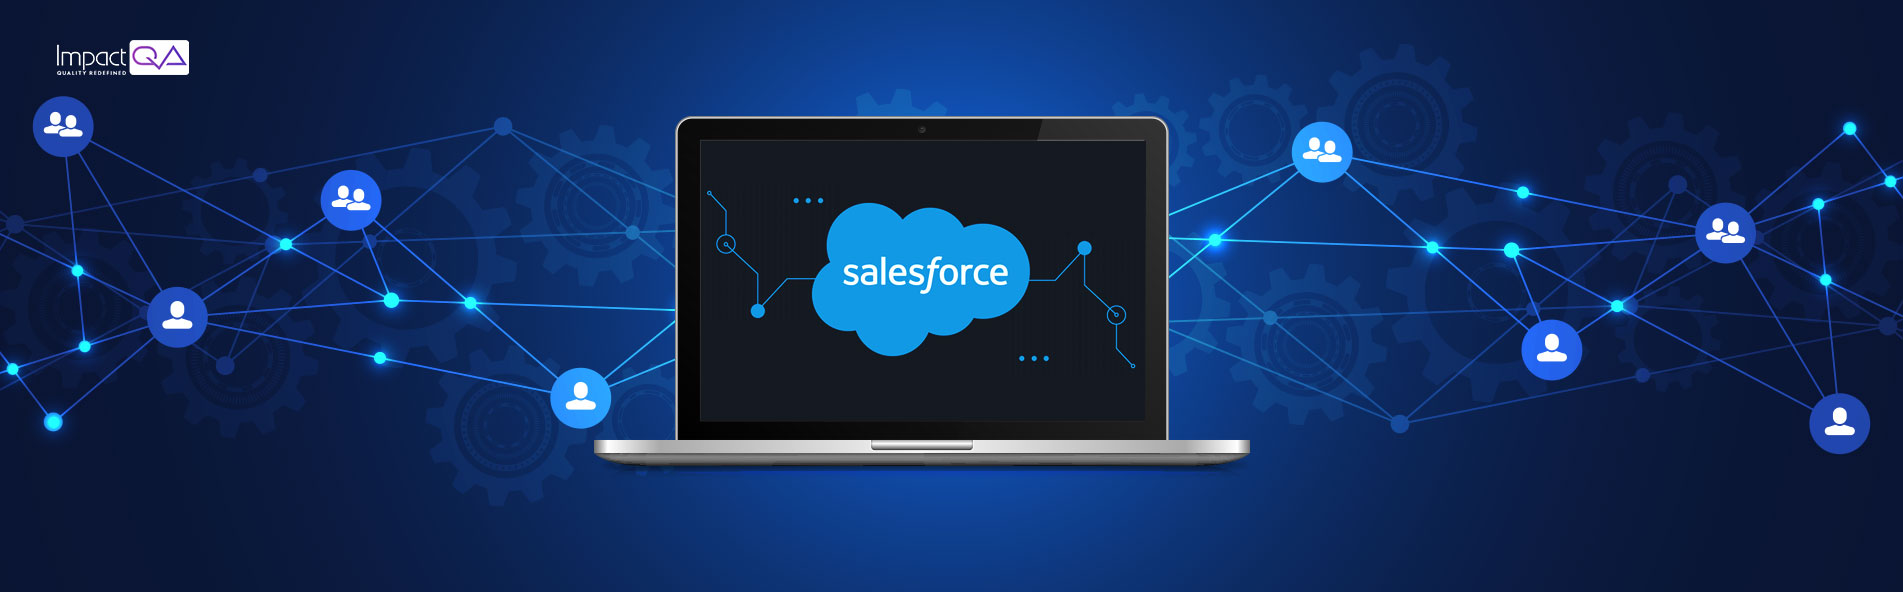 What Are The Benefits Of Using Test Automation In Salesforce?